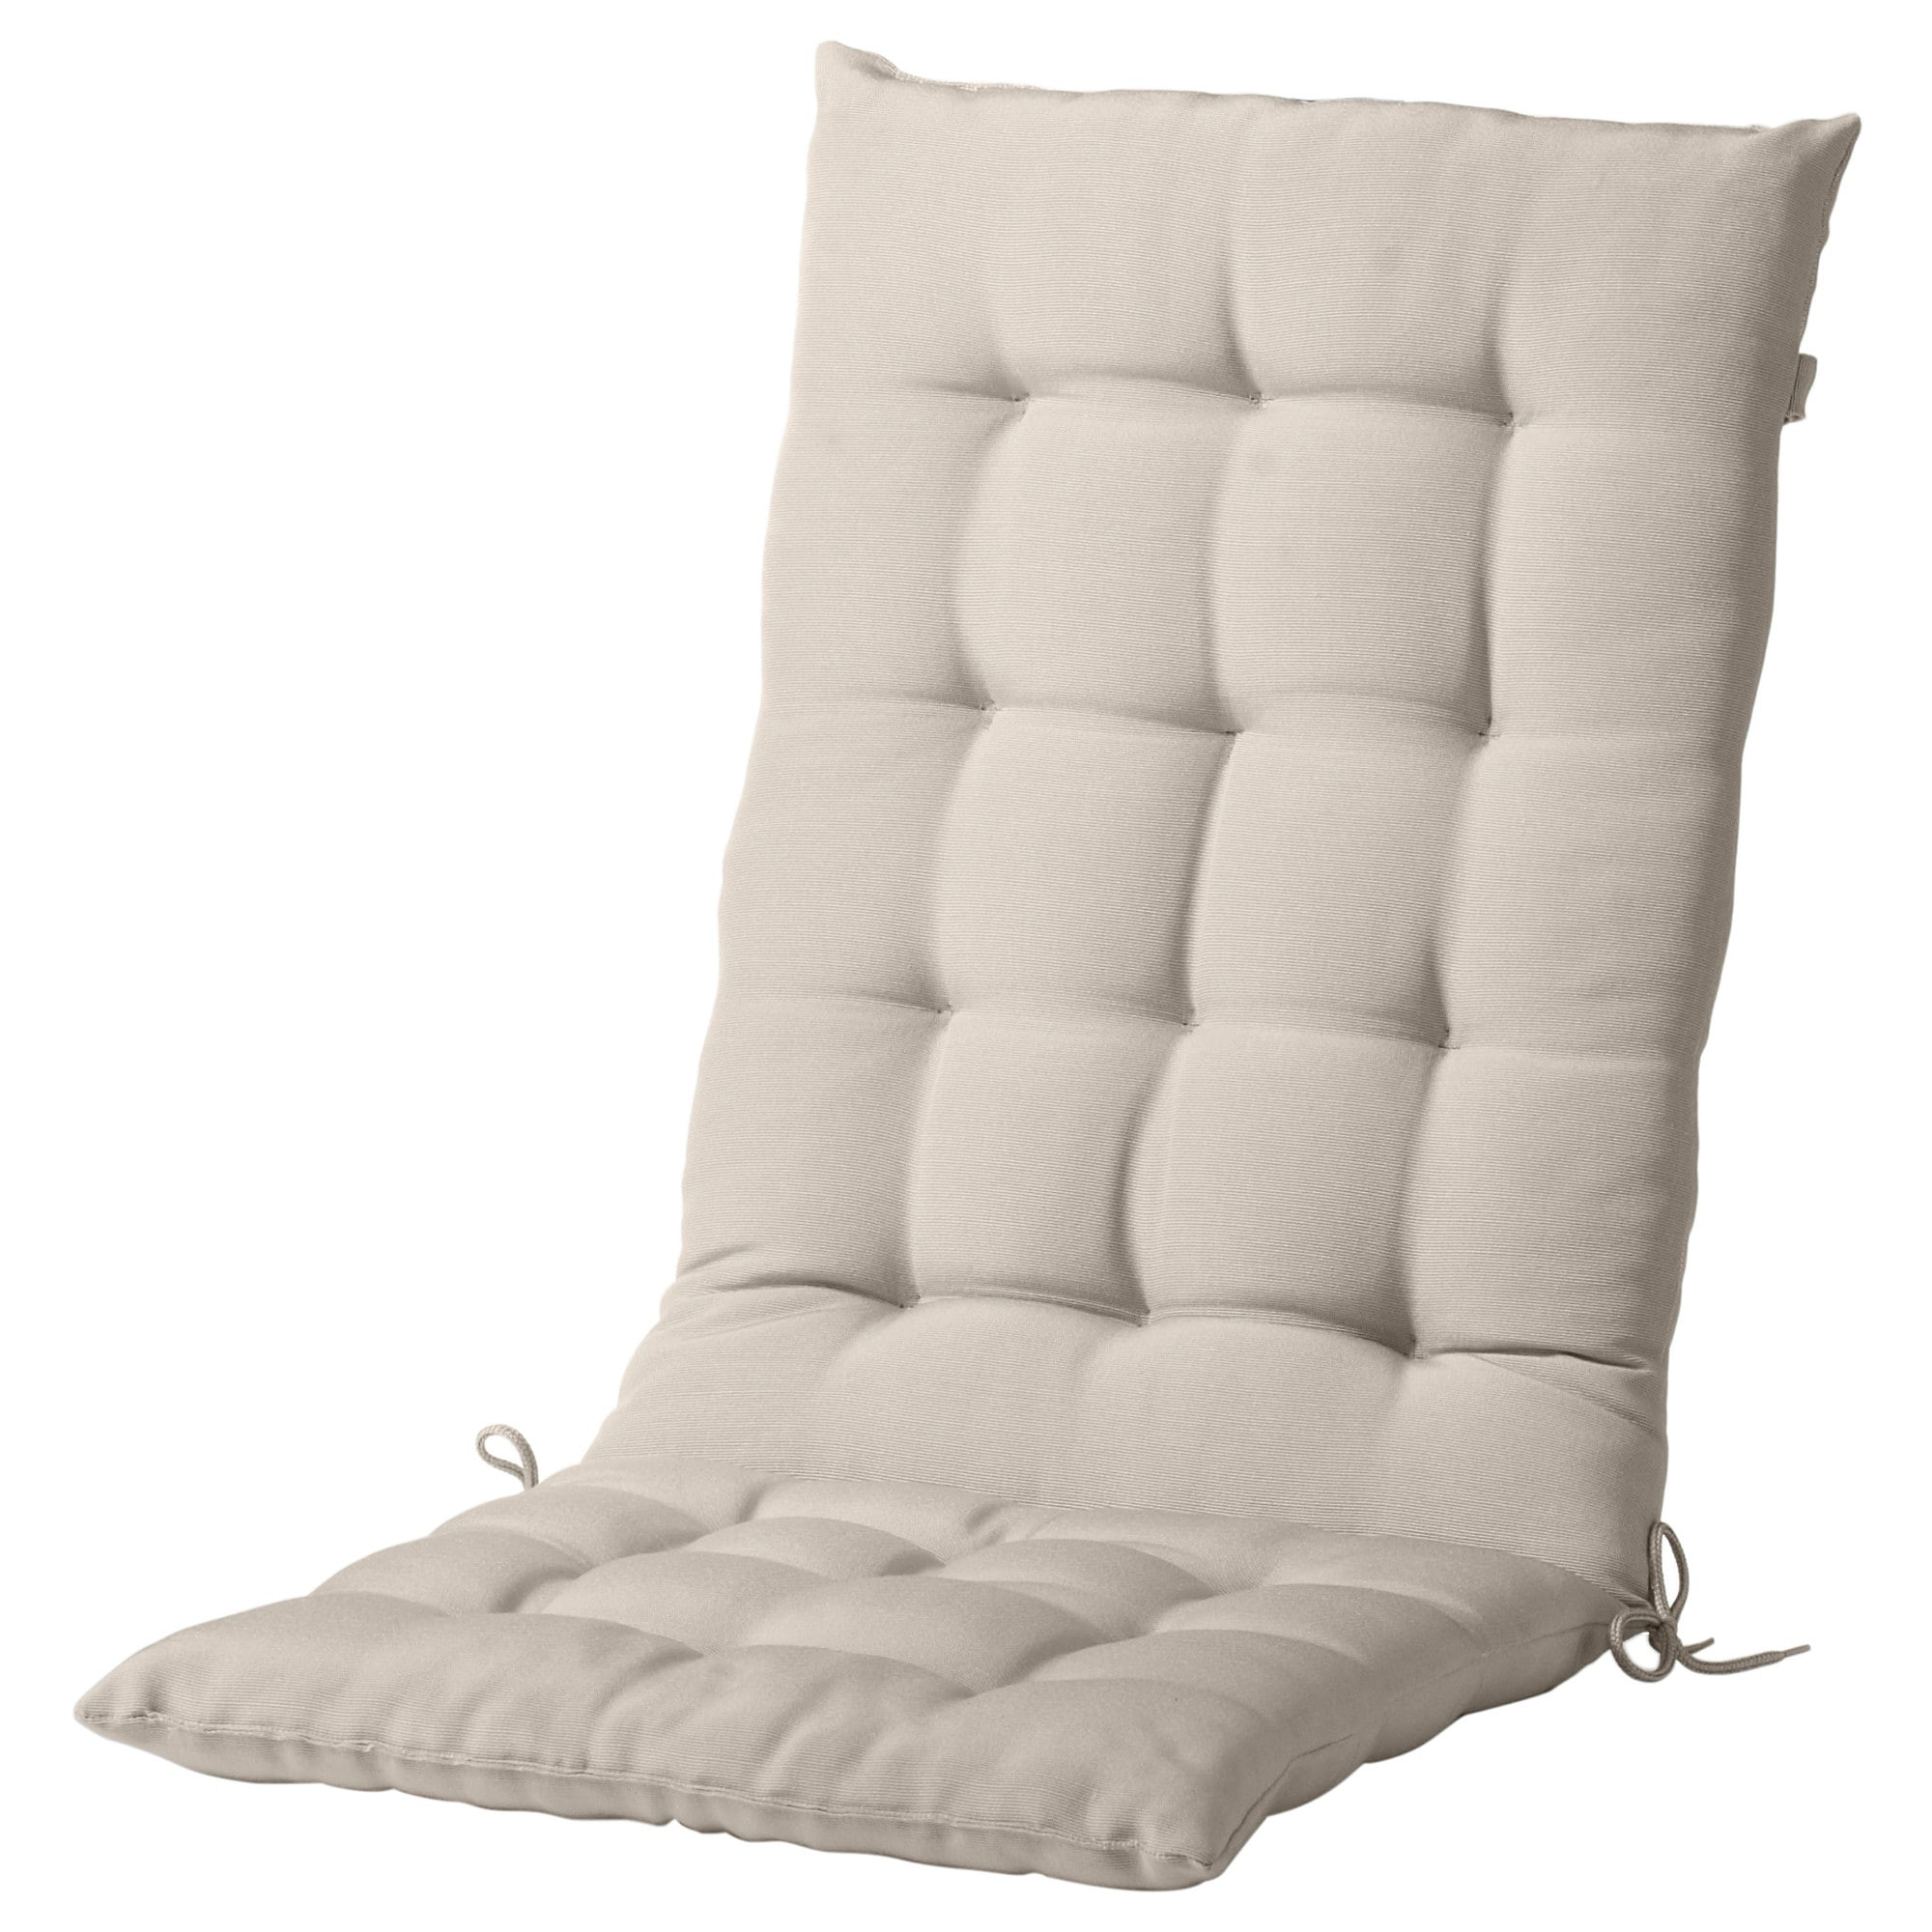 Best ideas about Outside Chair Cushions . Save or Pin Outdoor Cushions & Garden Cushions Now.